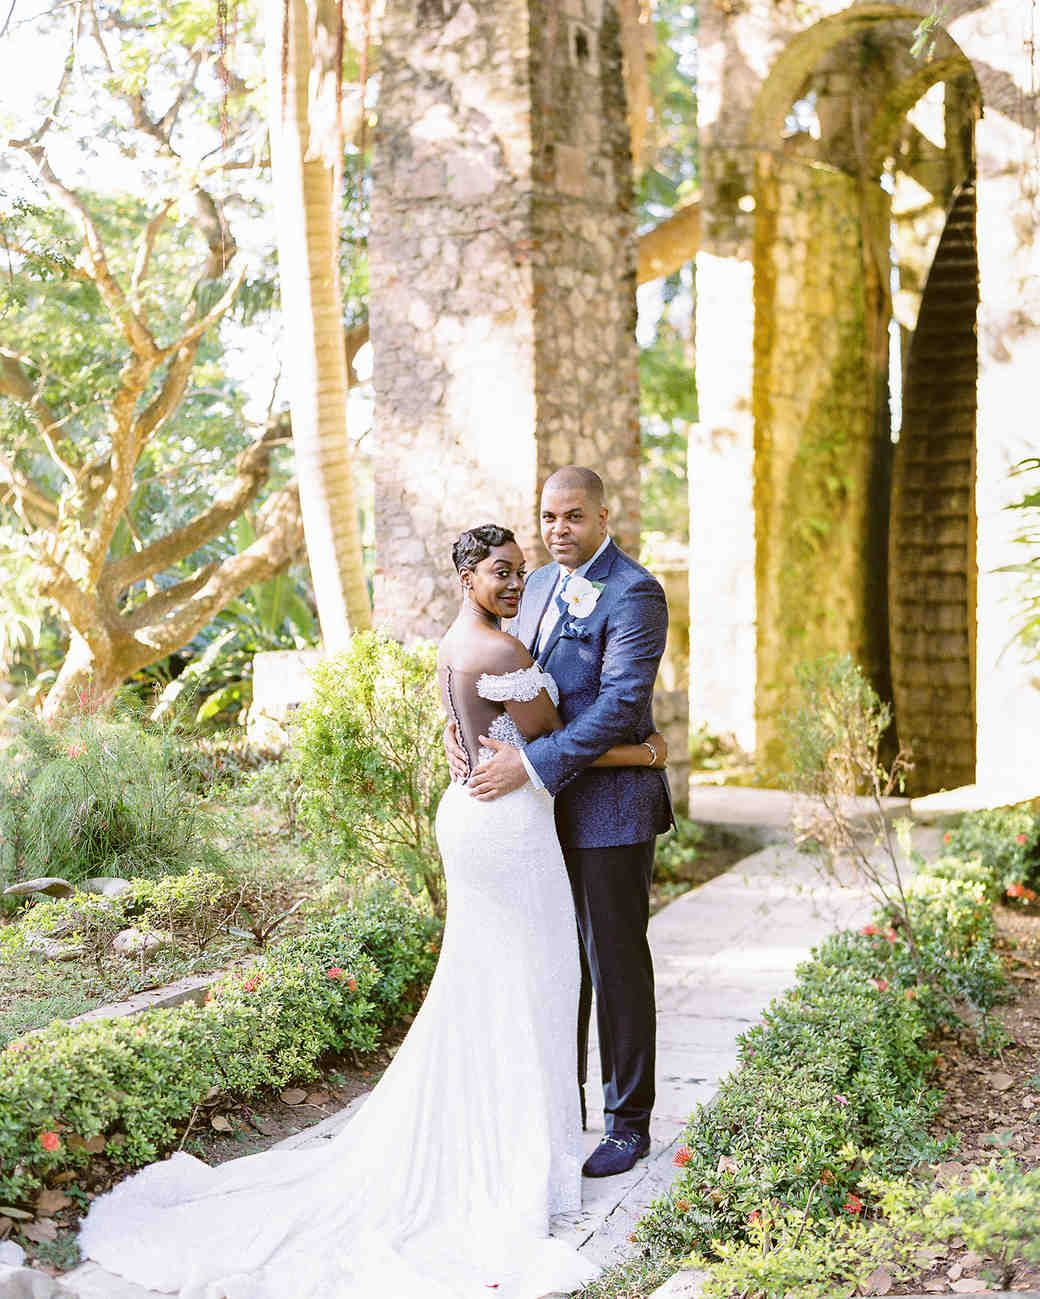 Wedding Hairstyles In Jamaica: This Couple Redefined Tropical Décor At Their Wedding In